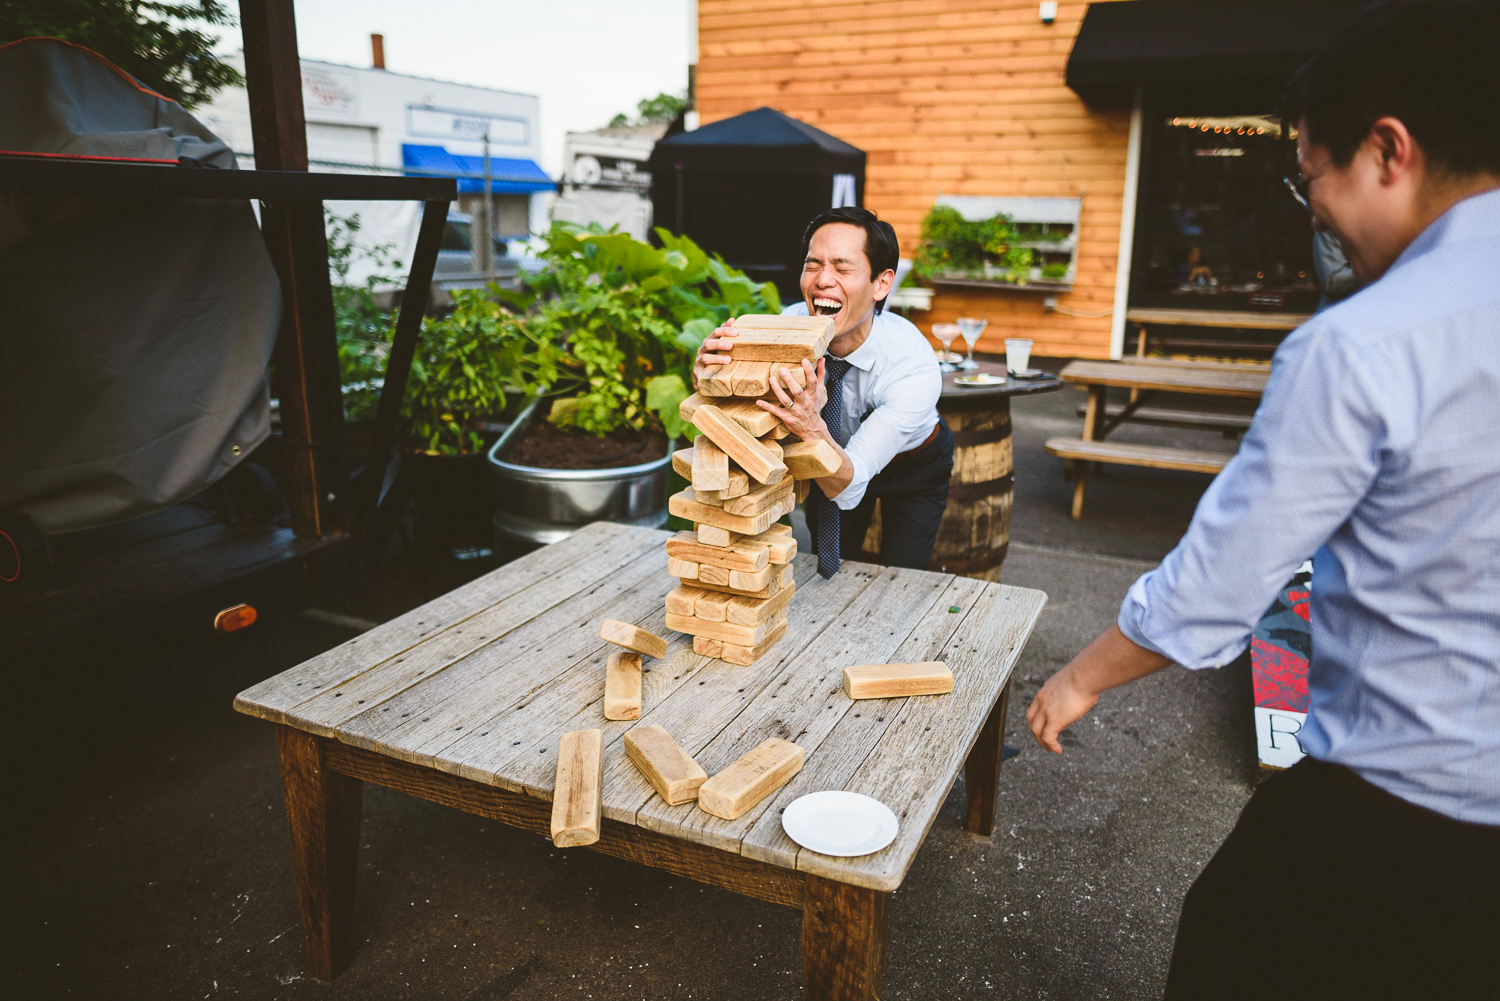 046 - giant jenga fail wedding at urban roost in richmond virginia.jpg